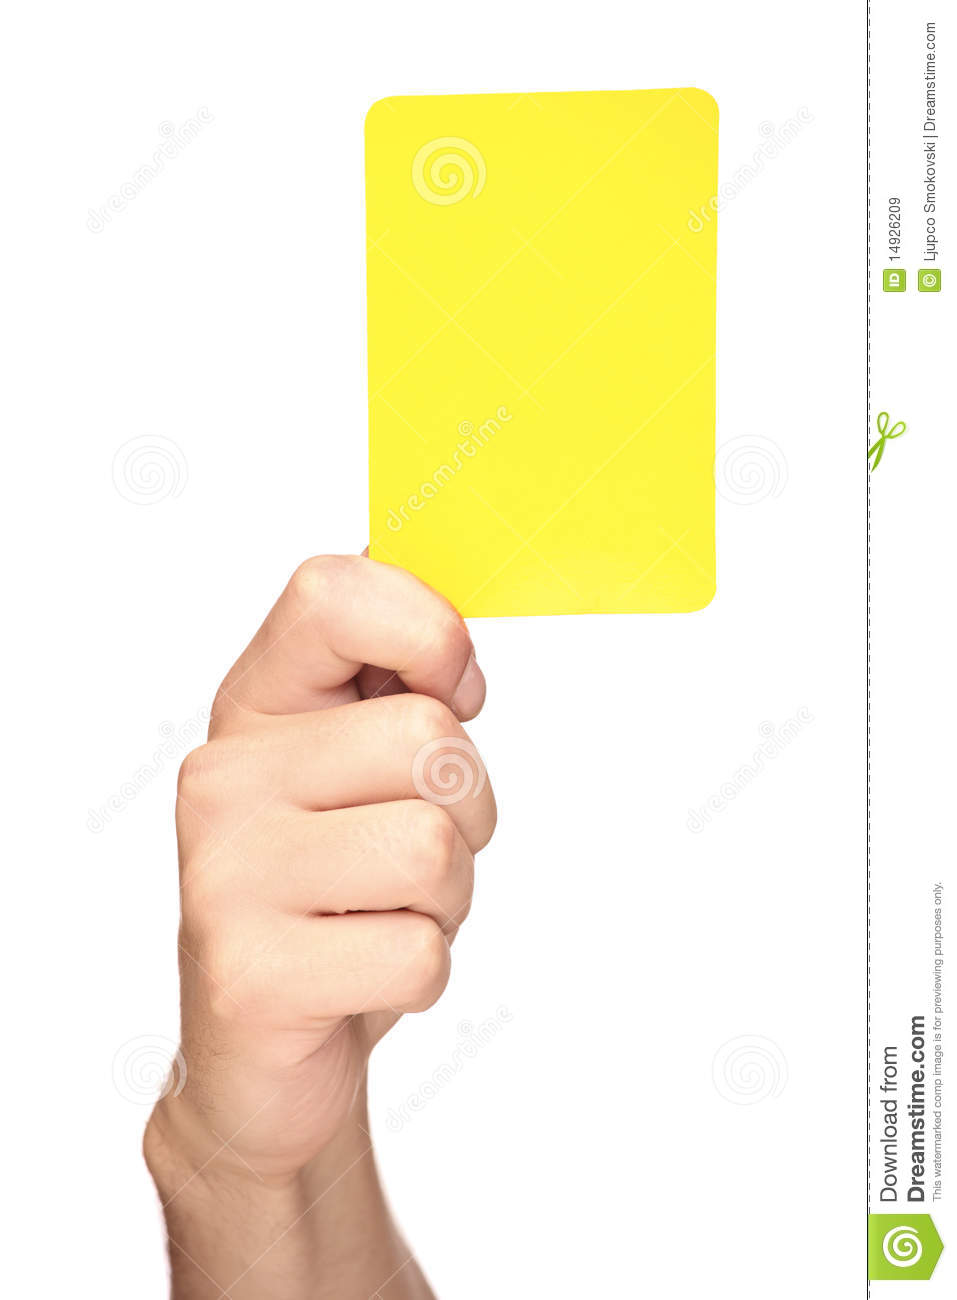 Hand Holding A Yellow Card Royalty Free Stock Images - Image: 14926209